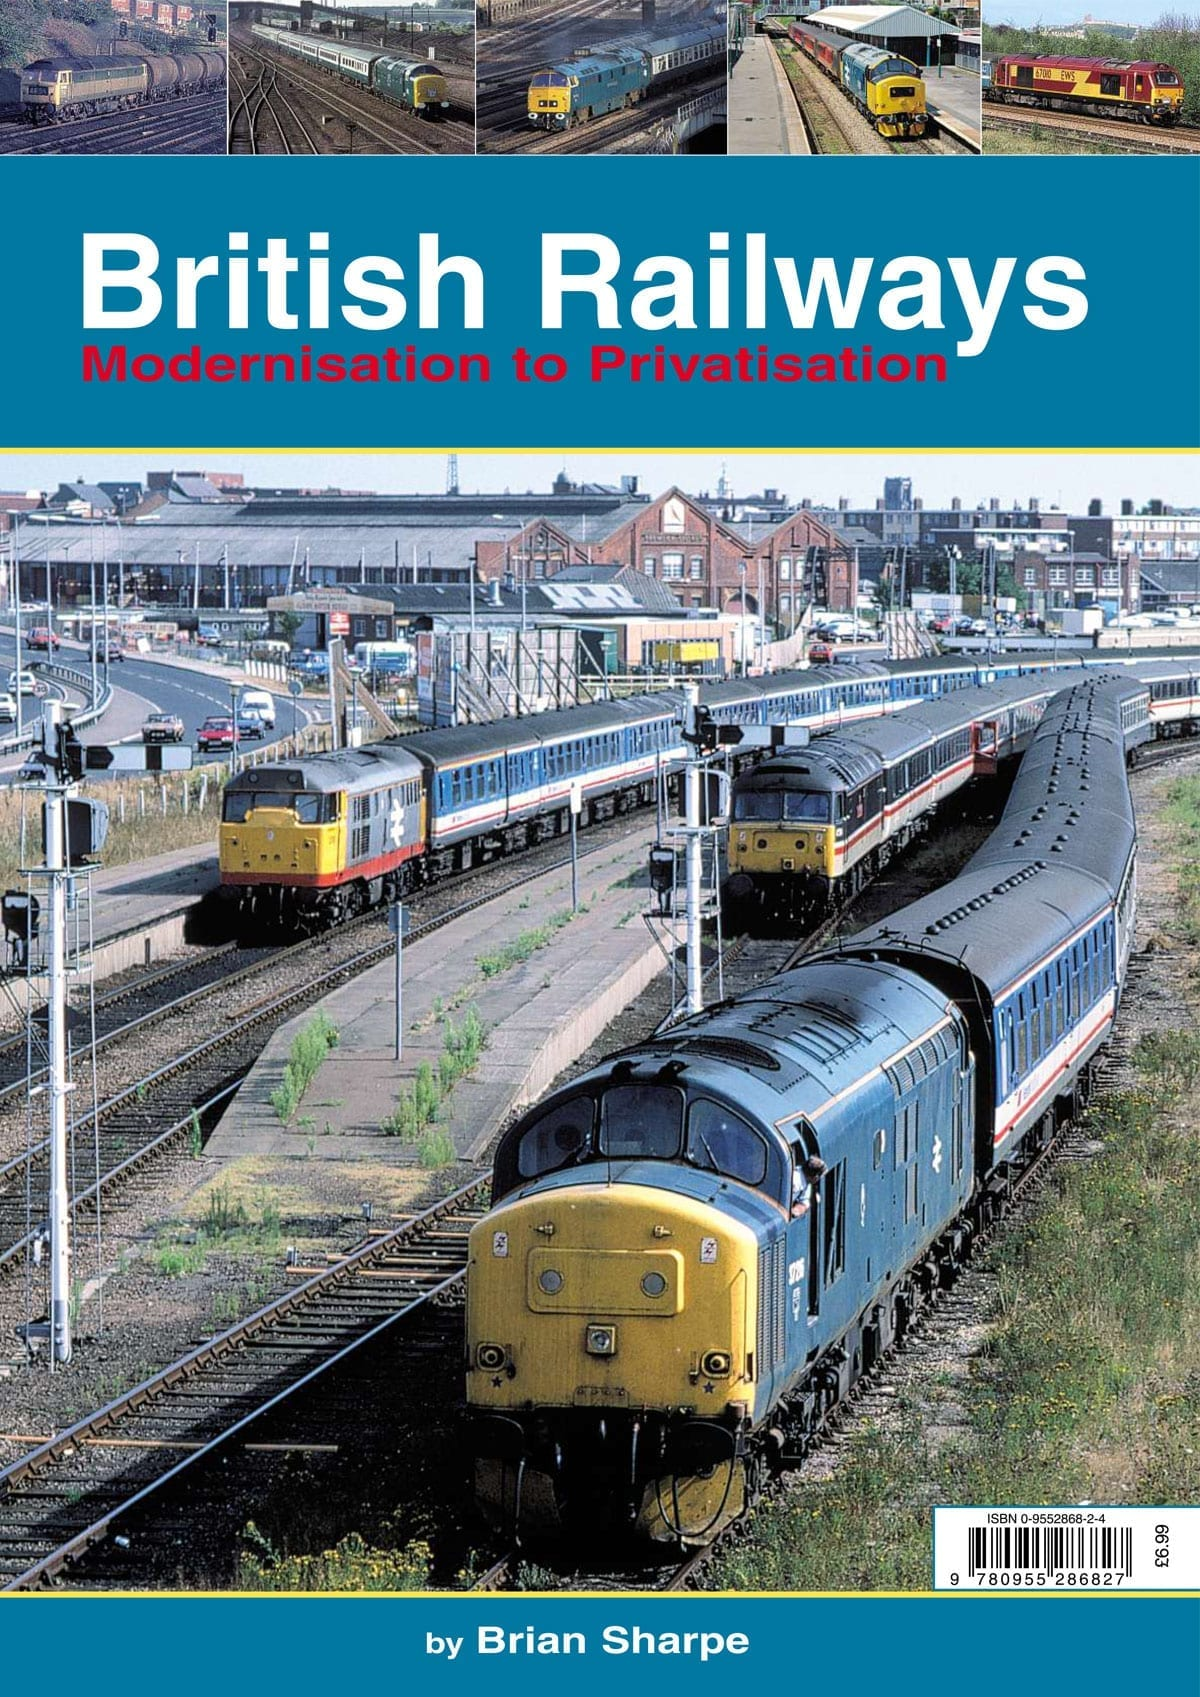 British Railways - Modernisation to Privatisation